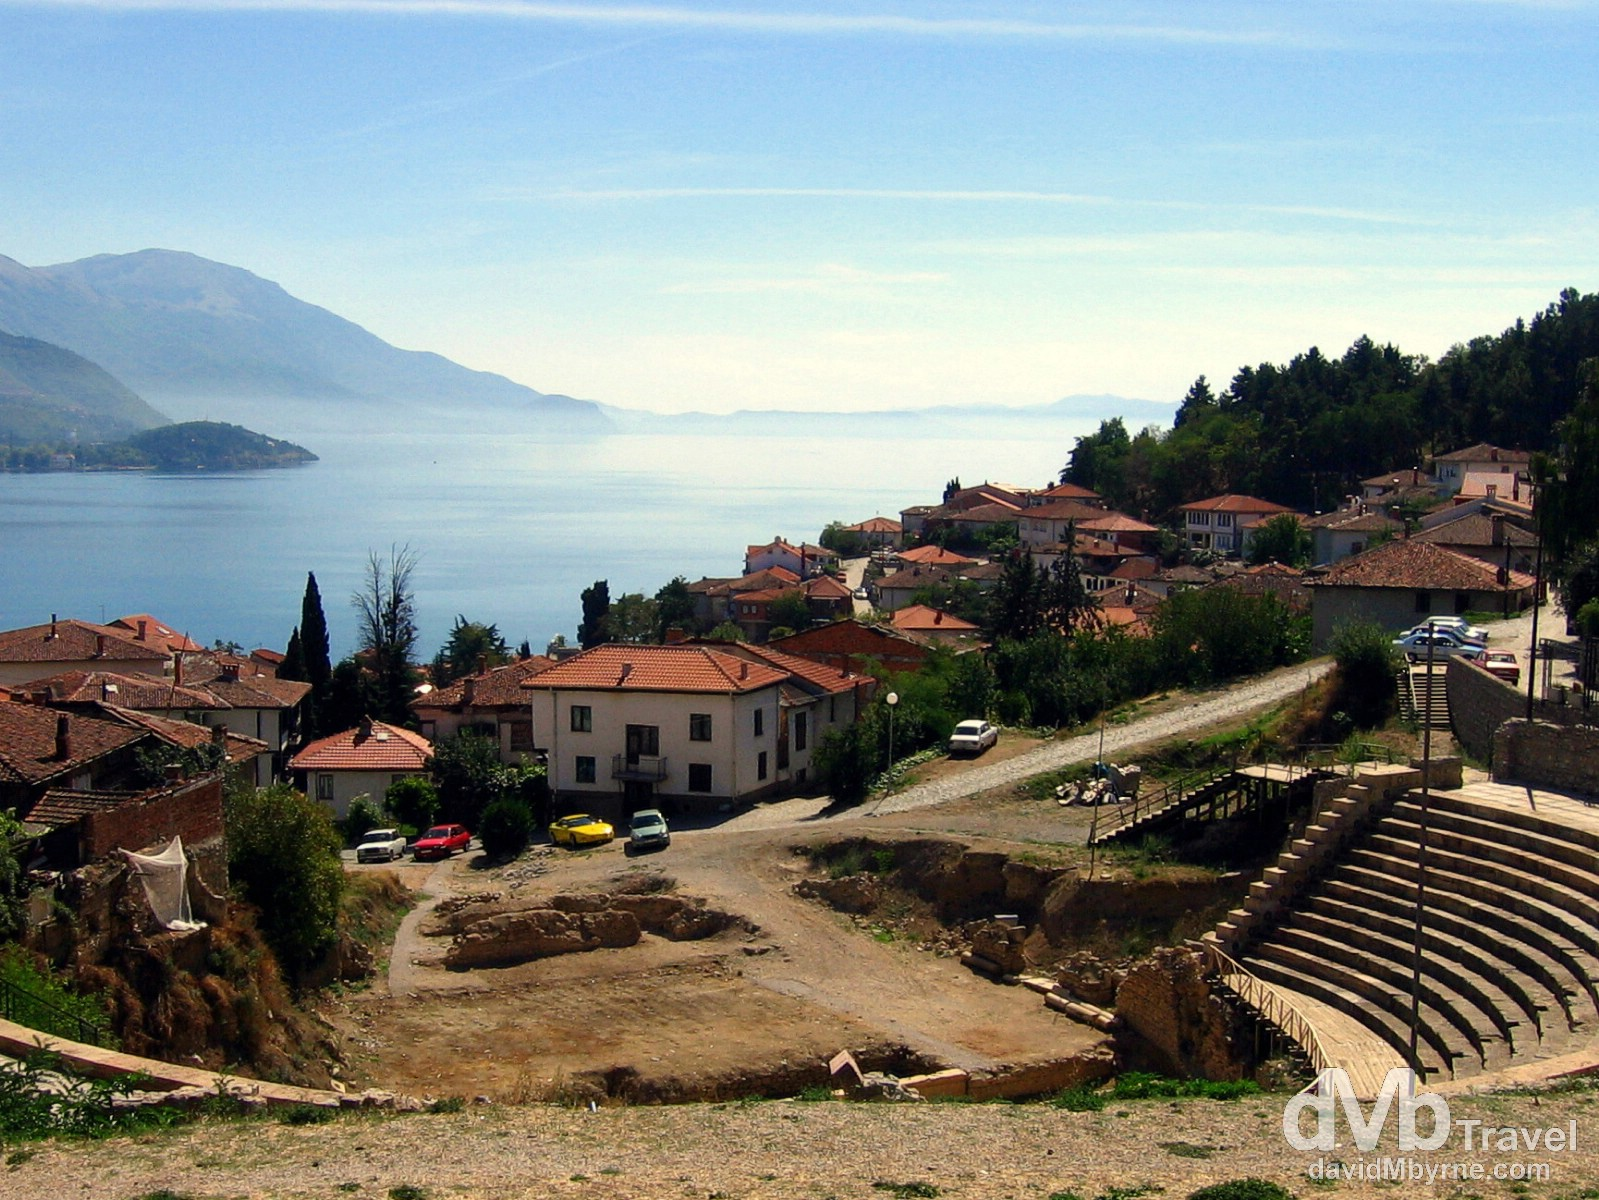 A section of the Ancient theatre of Ohrid overlooking Lake Ohrid in Macedonia. September 14th, 2007.